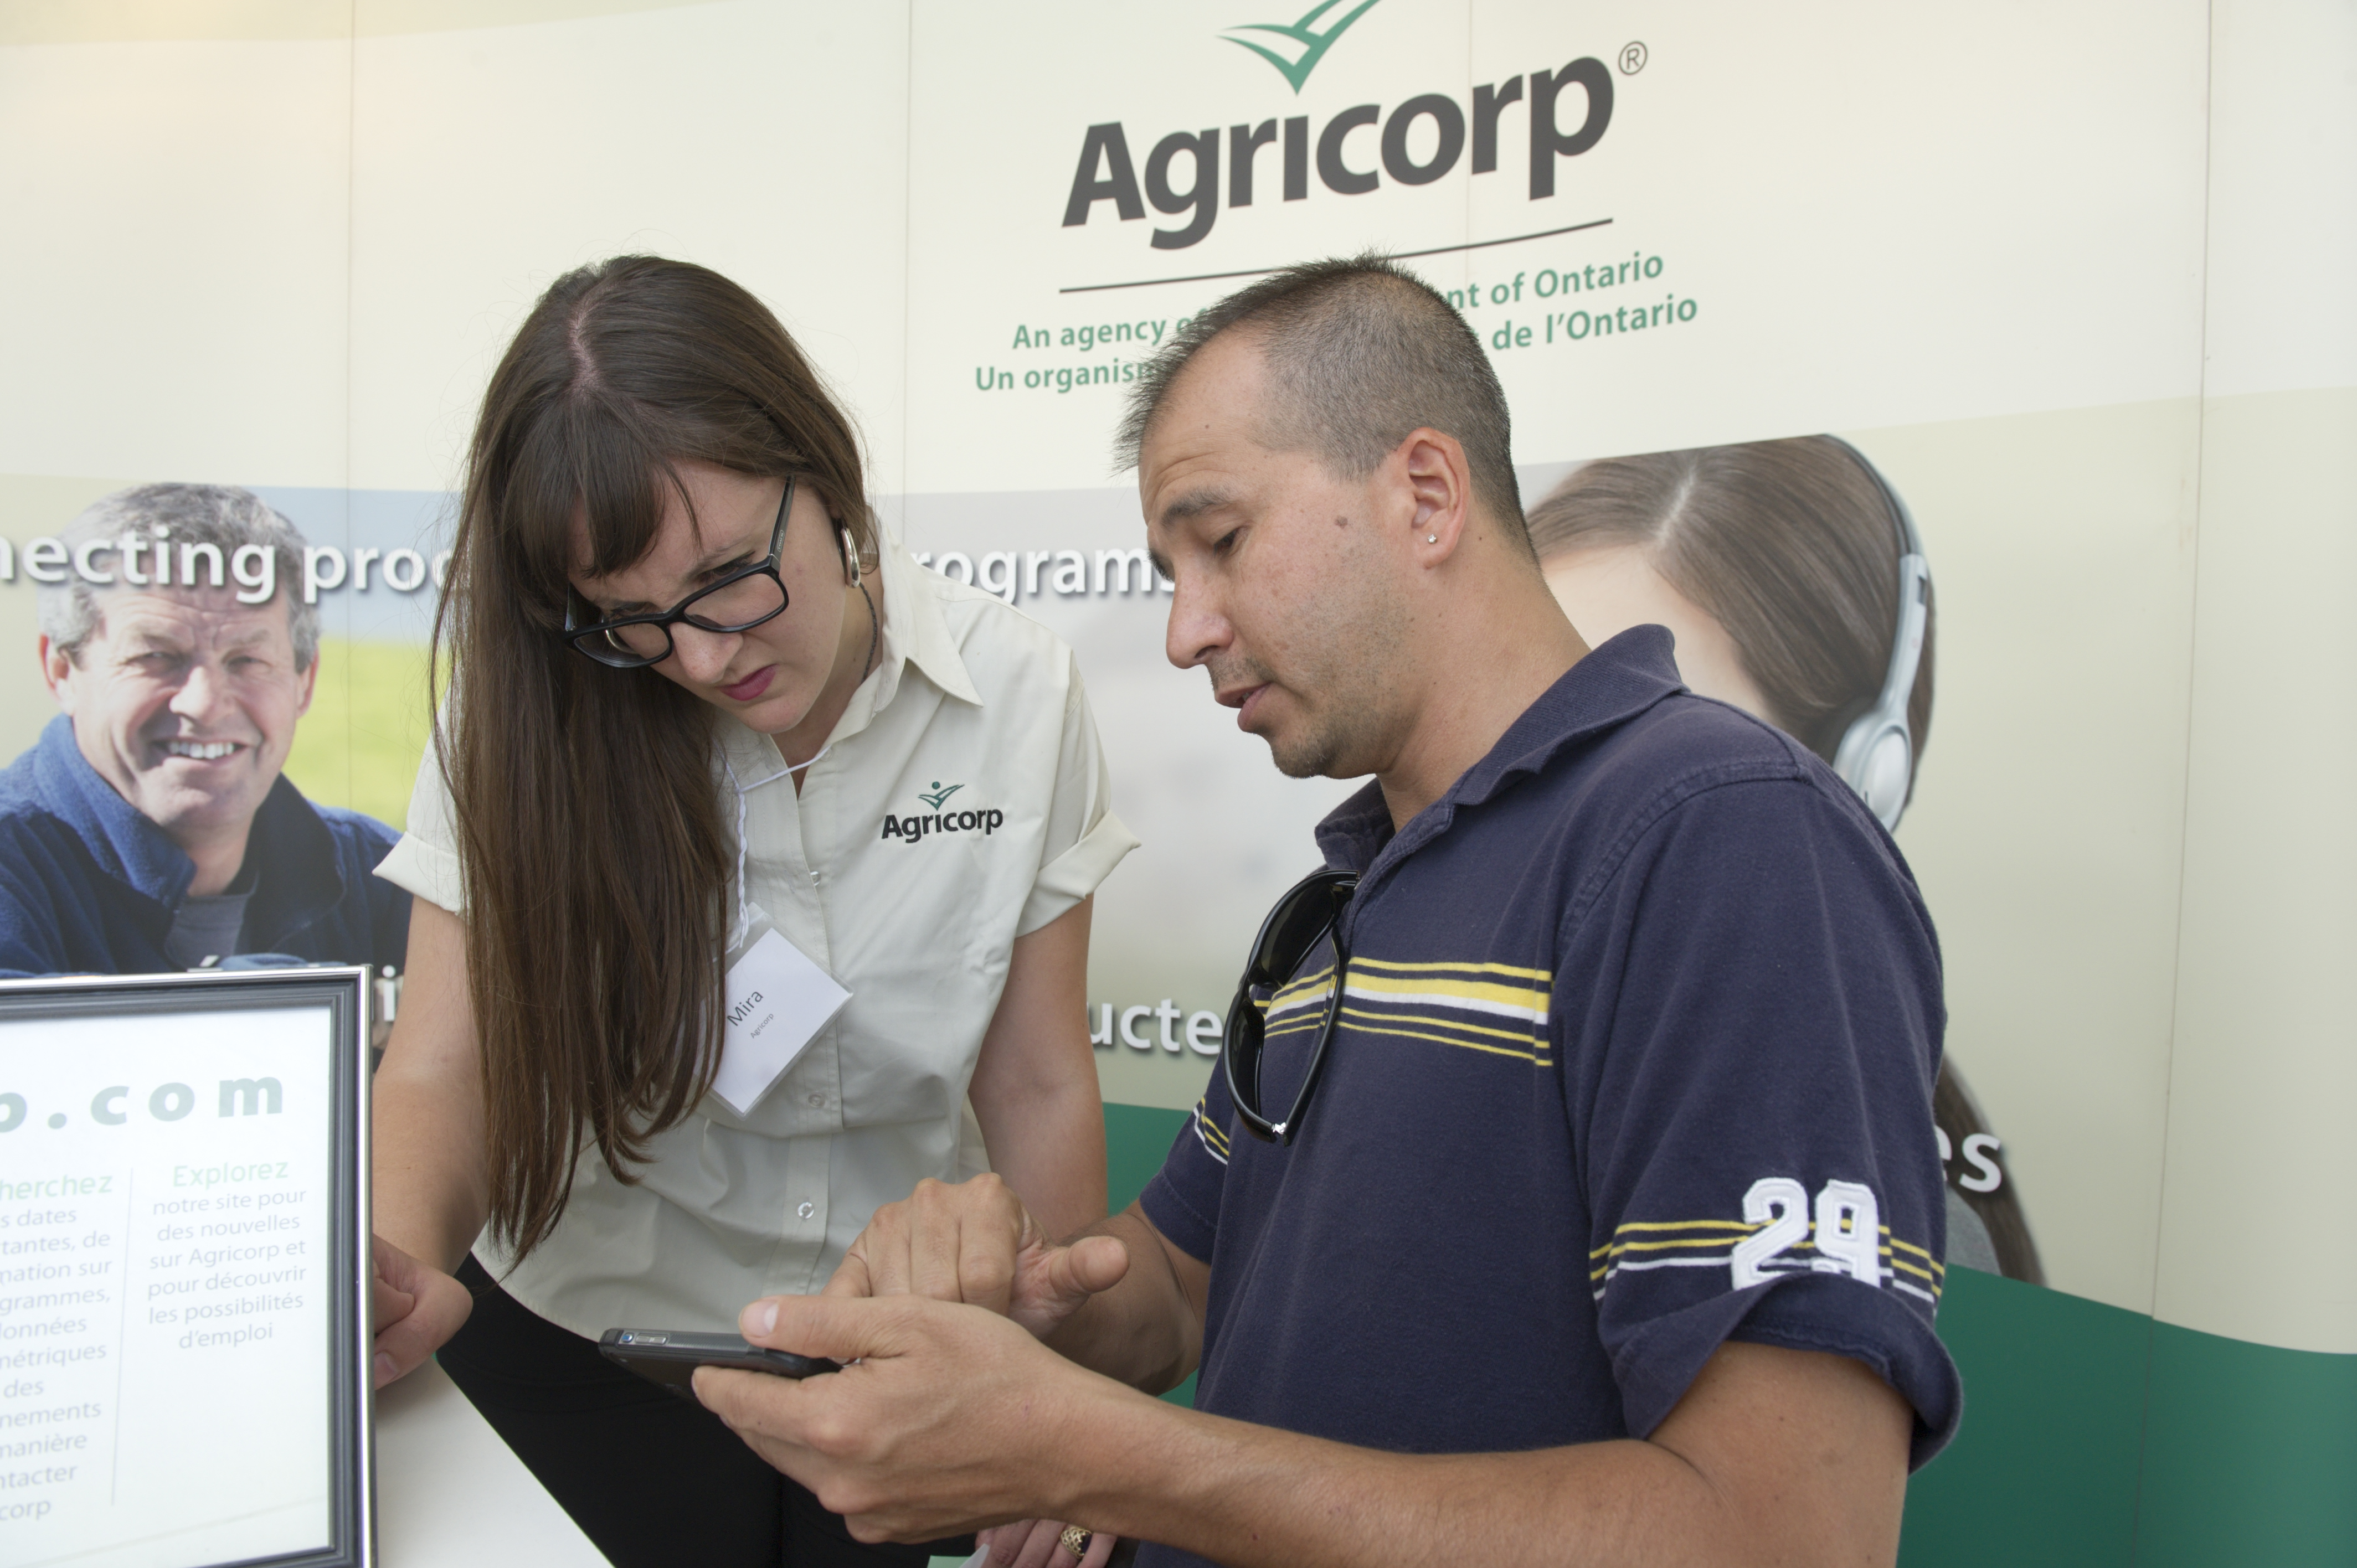 A producer shows an Agricorp staff member something on his phone at a farm show.